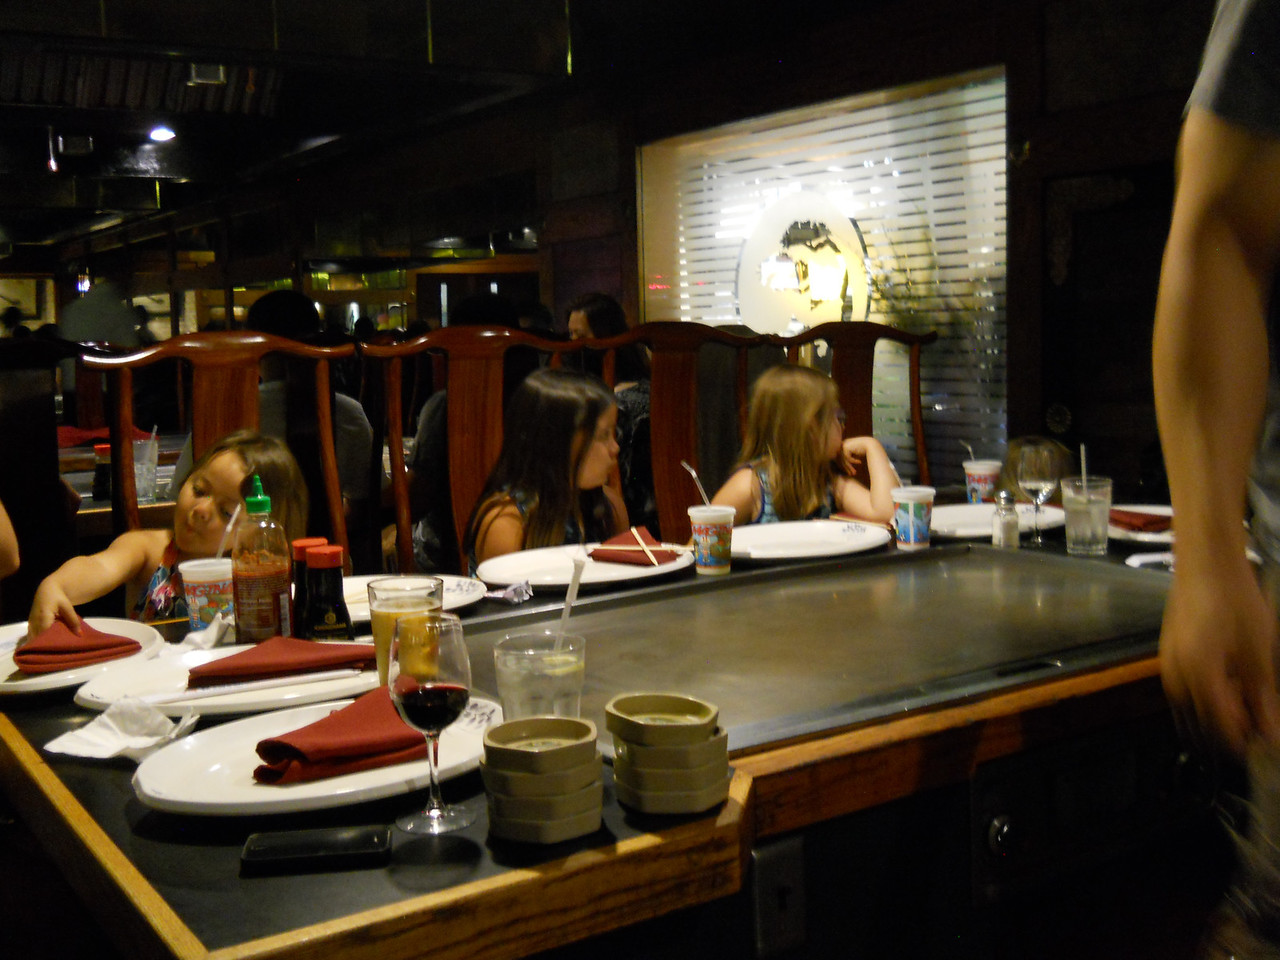 Kaidyn and Anna along with Alexa (all 3 and Katrina were flower girls) at the Rehearsal Dinner.  The girls were fascinated.  It was a Japanese Hibachi restaurant